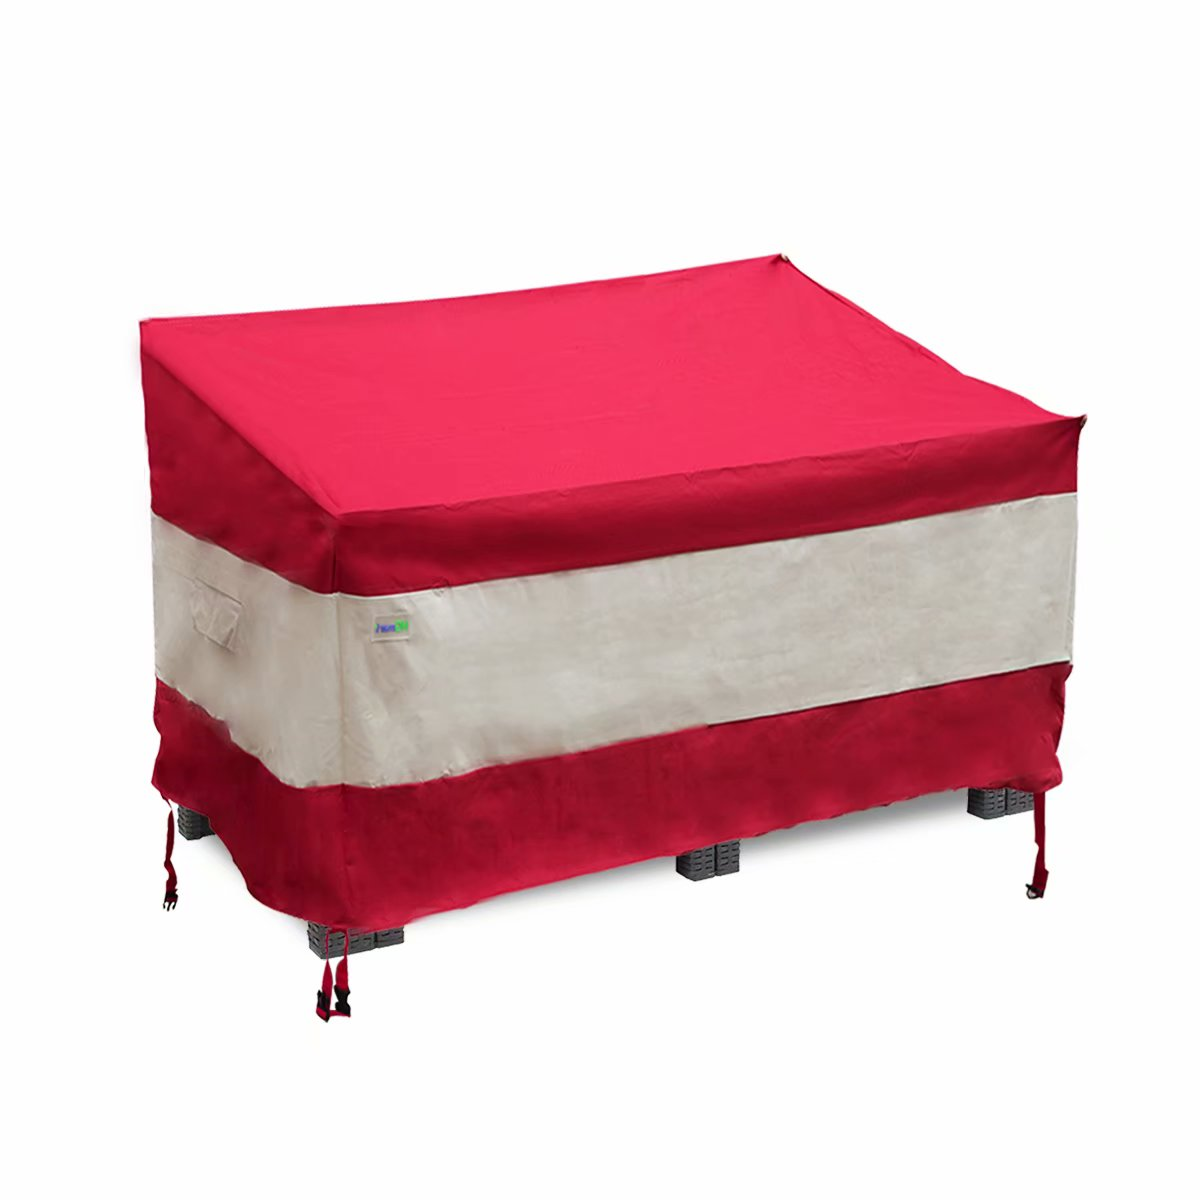 hgmart patio furniture covers 100 waterproof outdoor lawn heavy duty sofa cover with air vent and stable strap size 58x33x38inch wine red